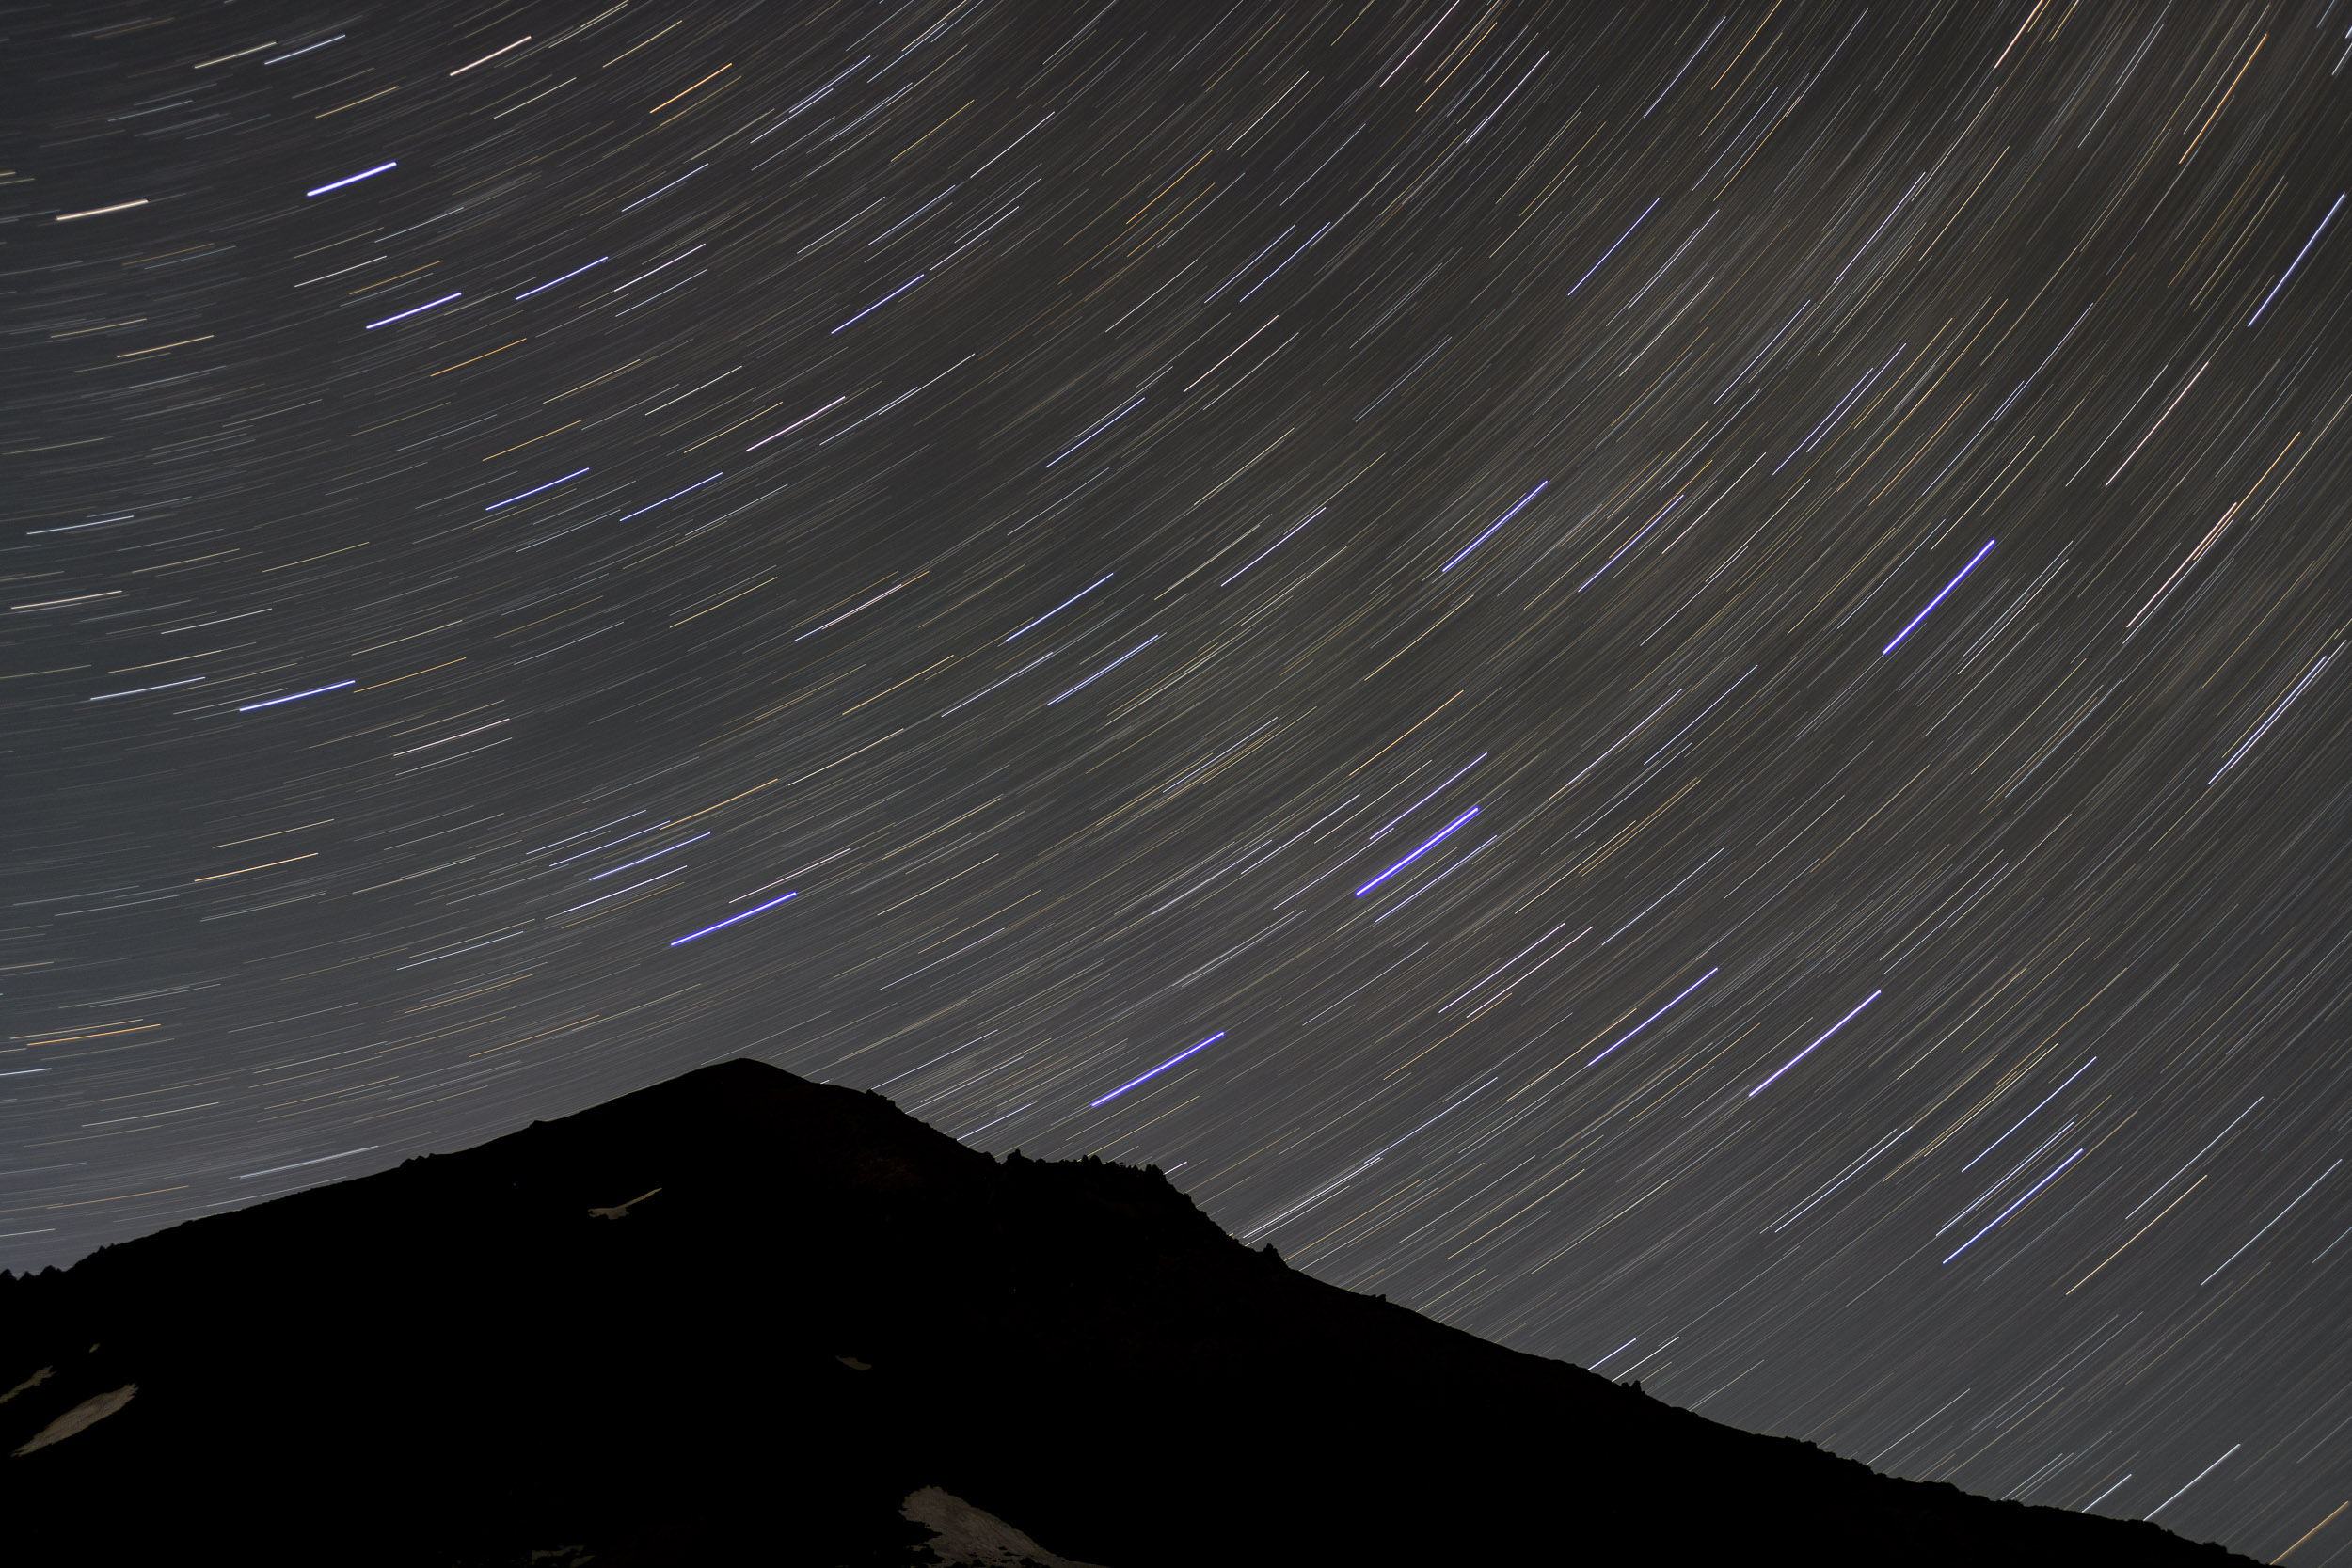 Figure 7. Star trails over Lassen Peak. Nikon D850 with a Nikon 80-200mm f/2.8 lens. 13 minutes, f/2.8, ISO 160.